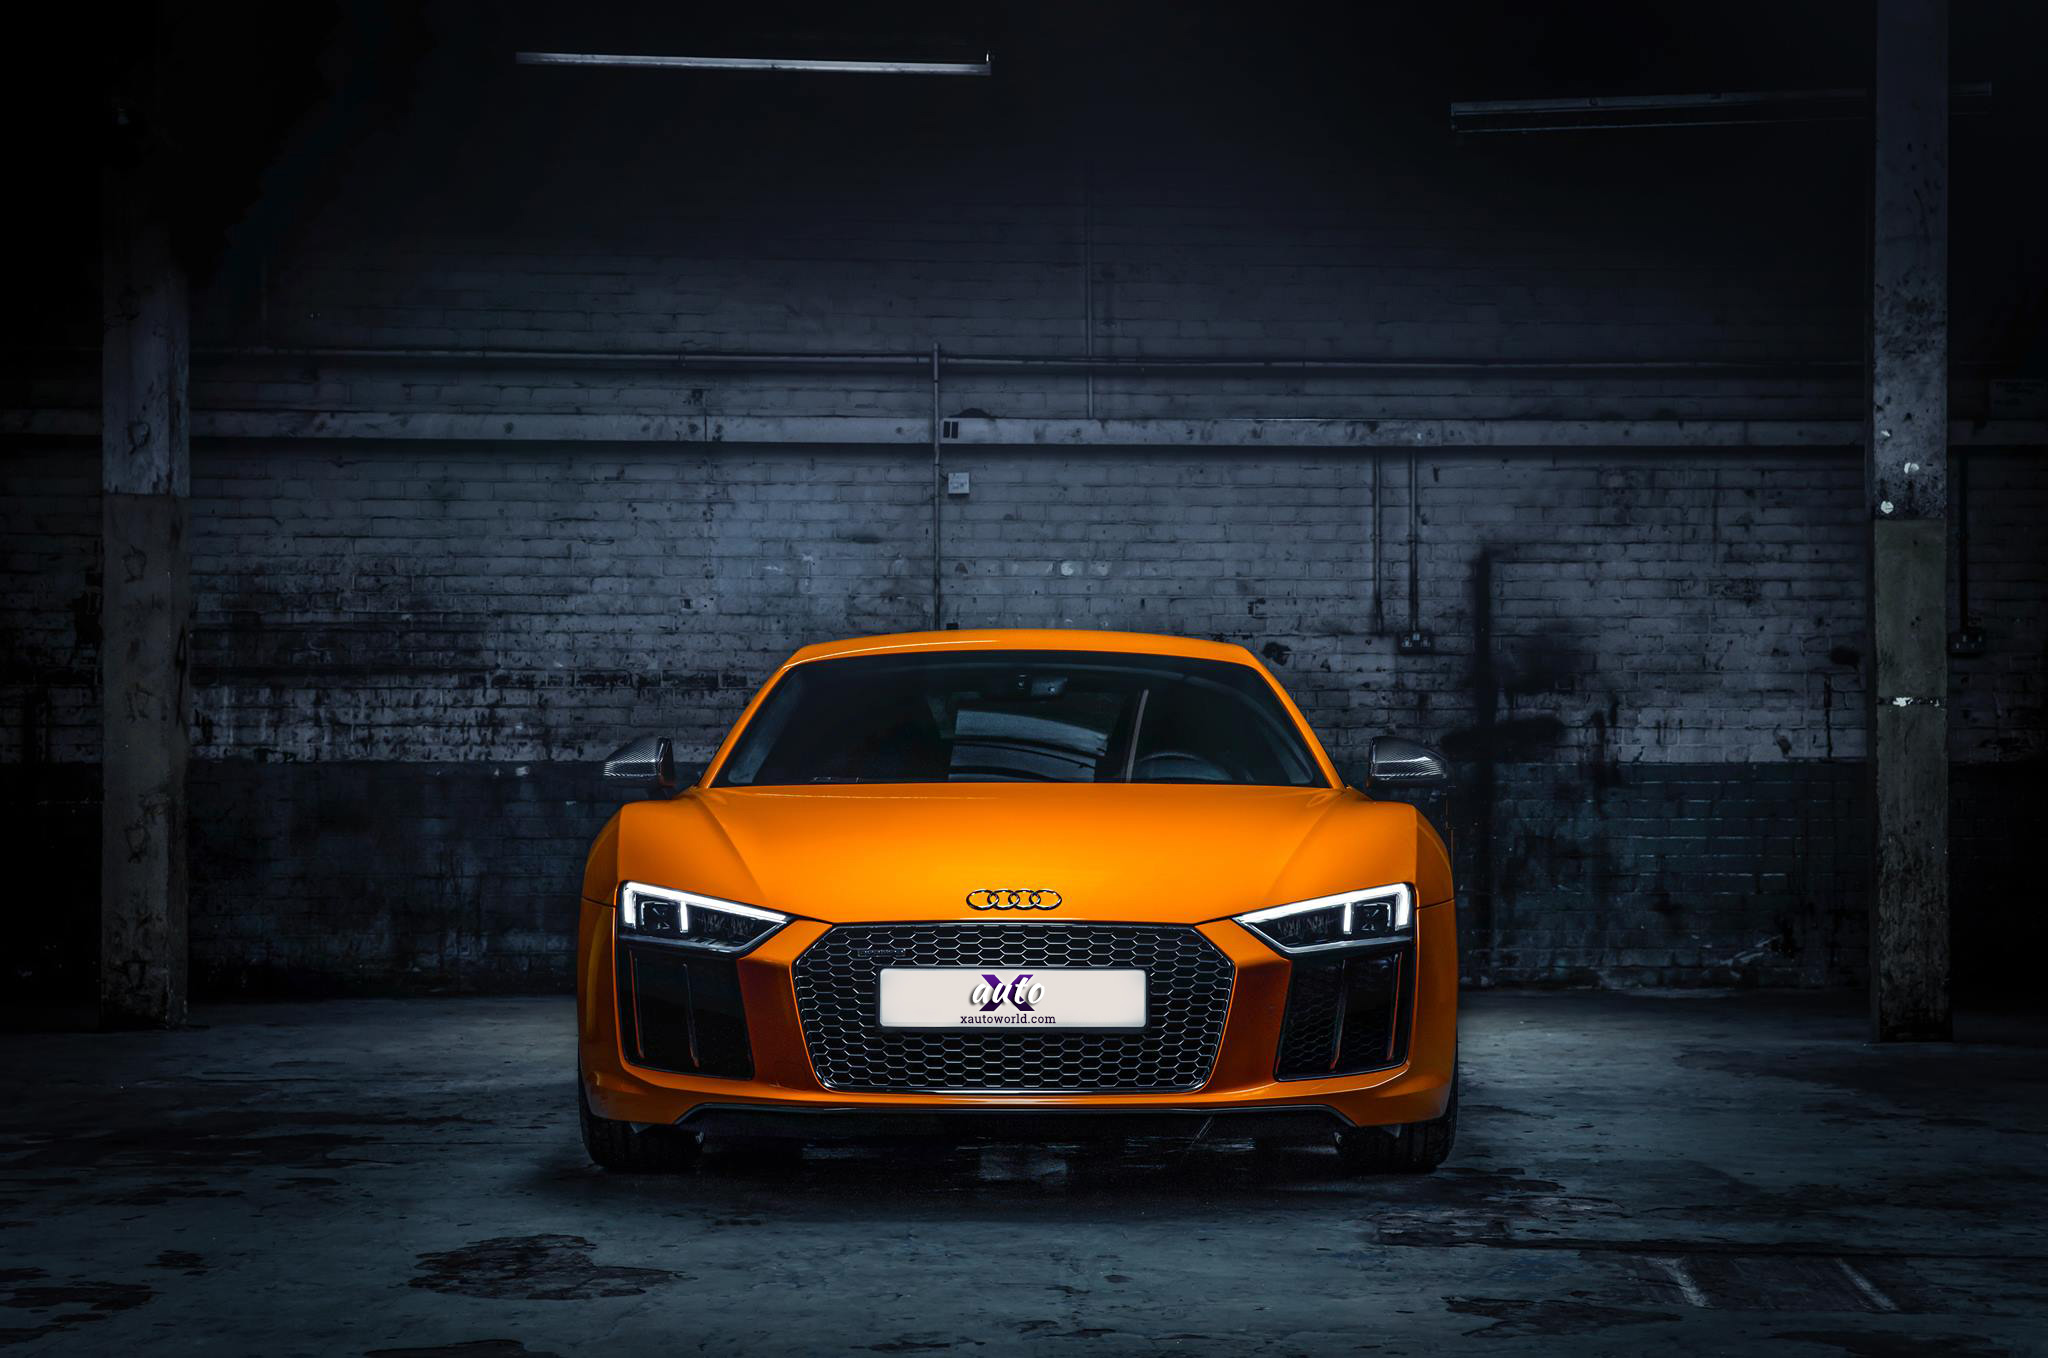 Audi Concept Car Wallpaper Audi R8 Orange Colour Hd Wallpapers X Auto